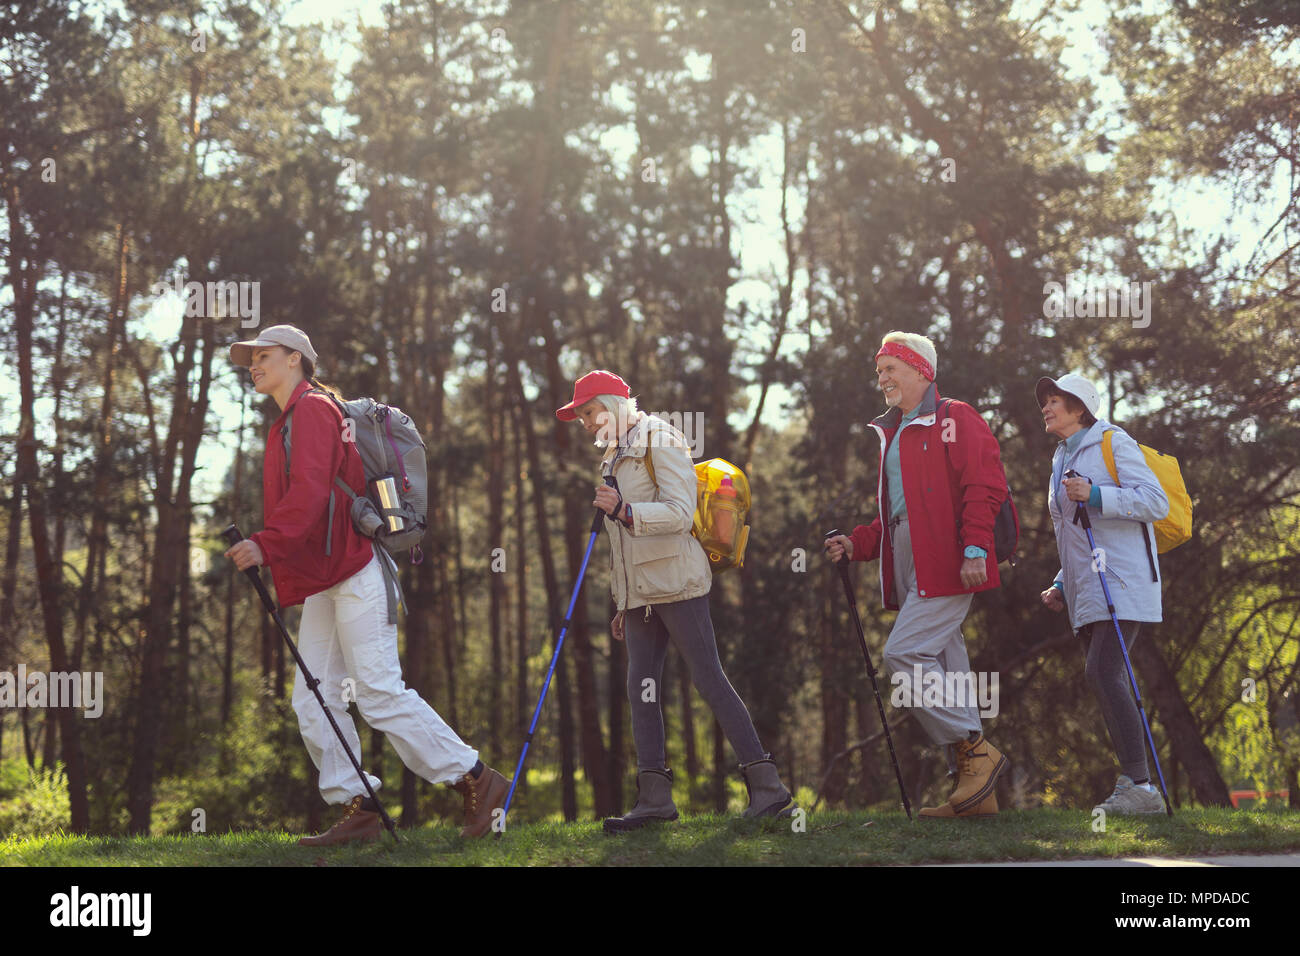 Alert guide leading her team of hikers - Stock Image